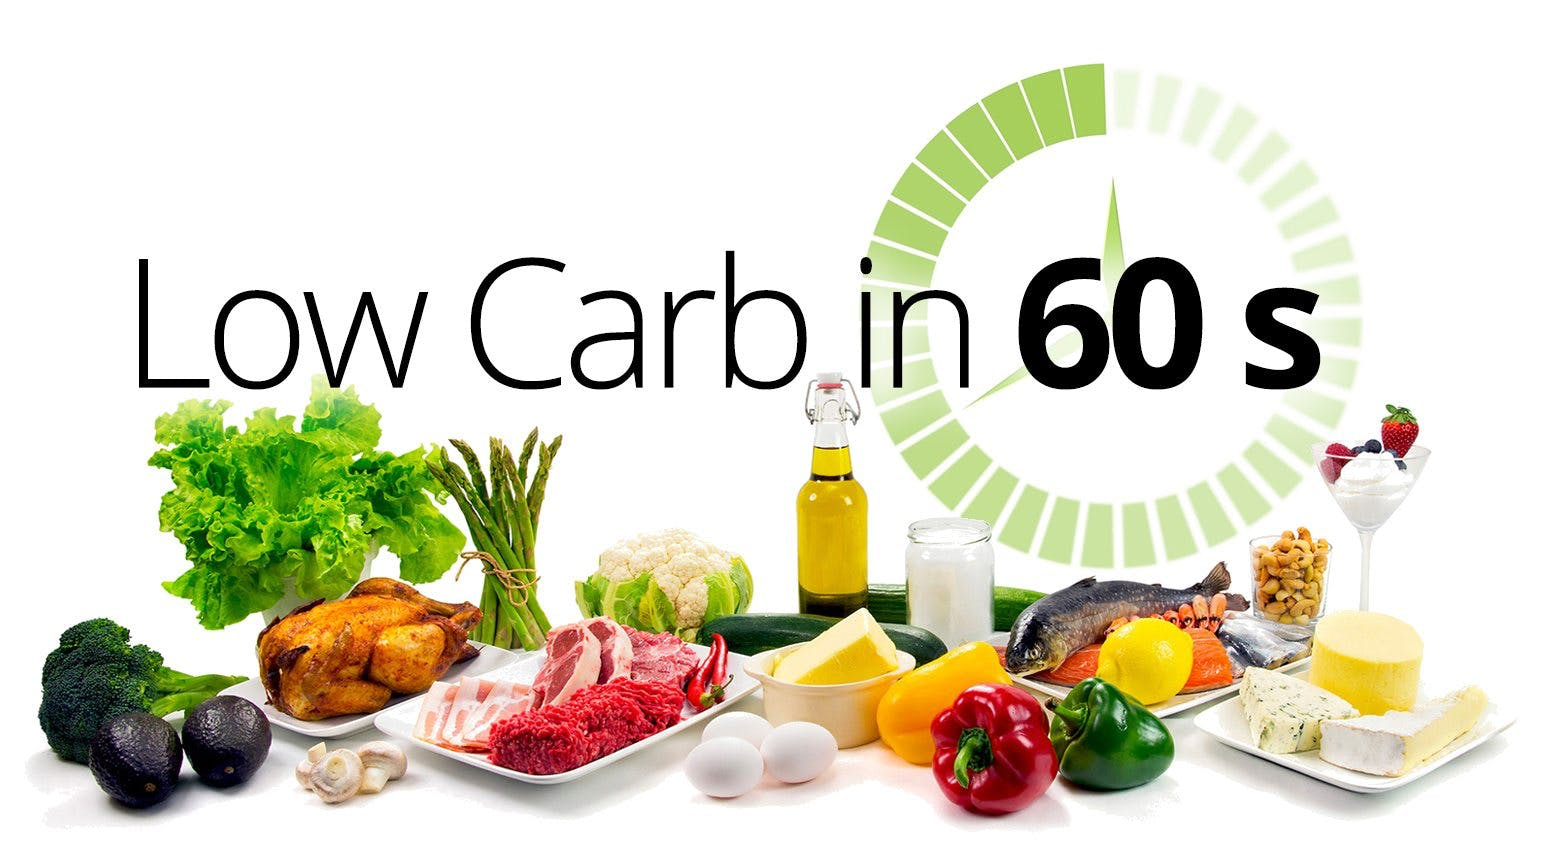 Low carb in 60 seconds - Diet Doctor